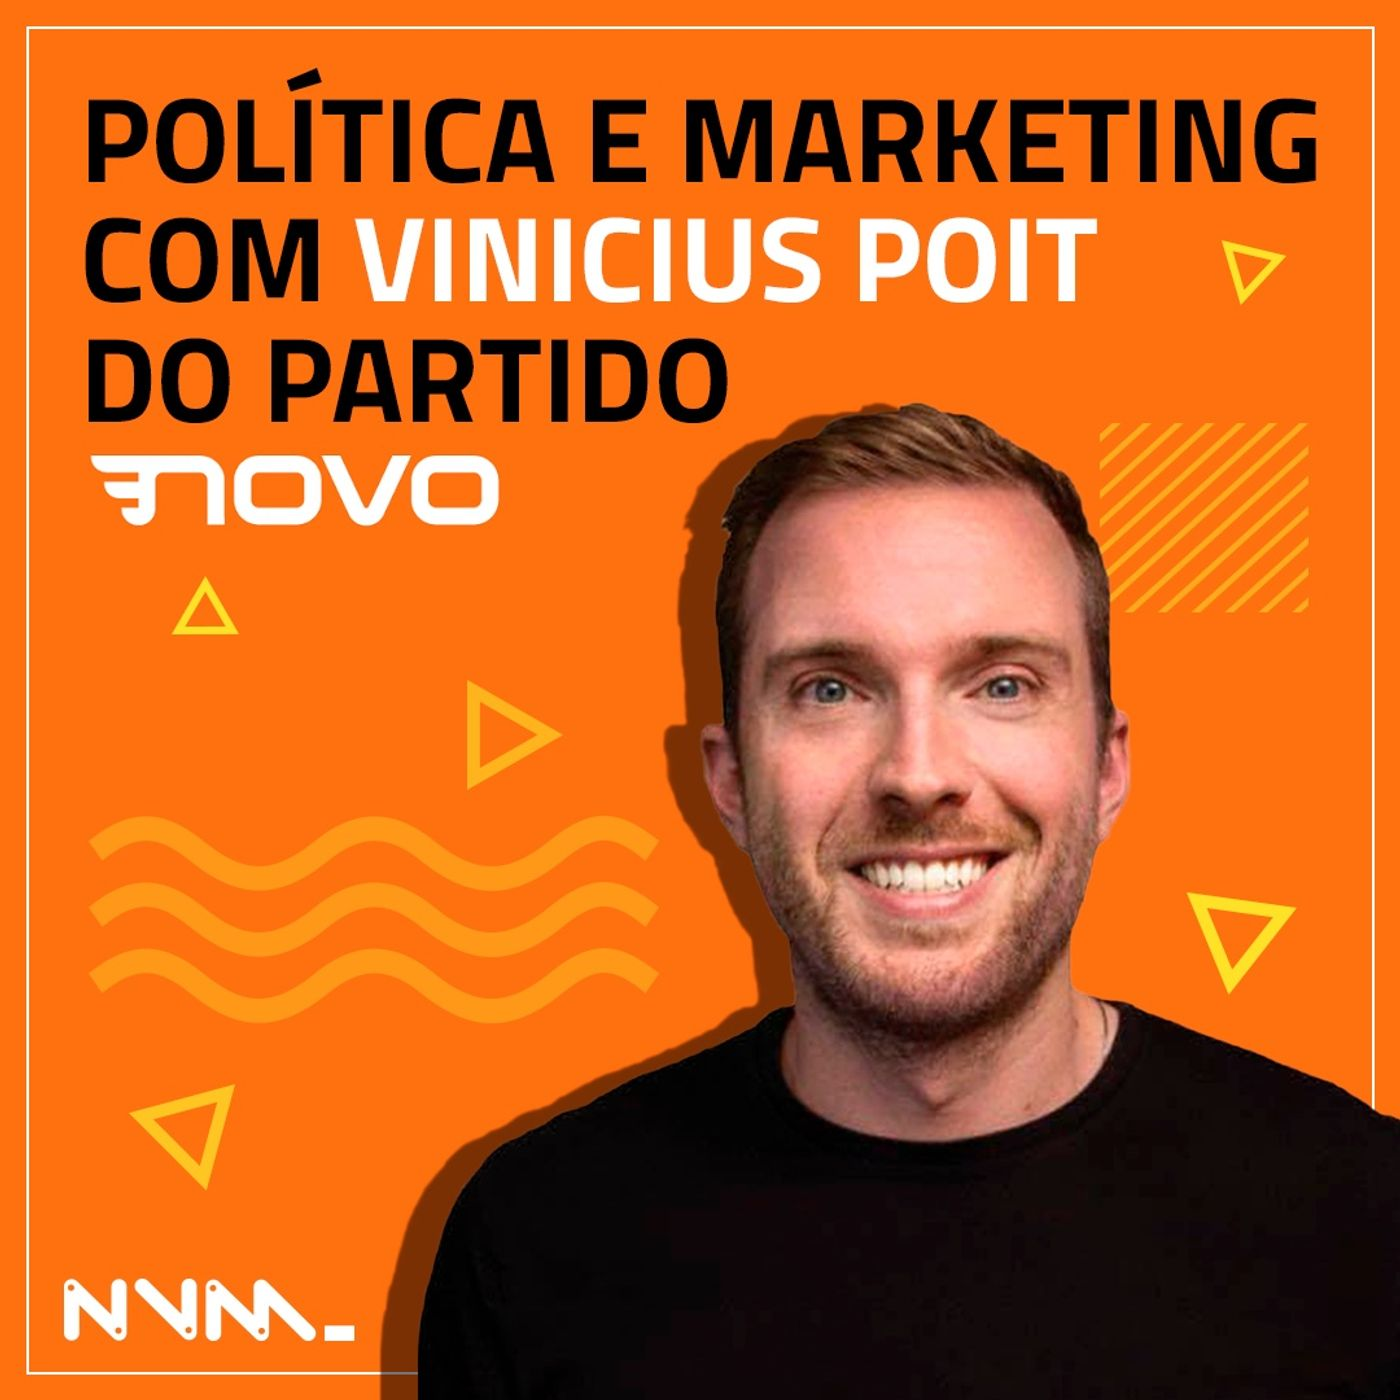 #01 Política e marketing na visão do deputado federal Vinicius Poit do partido NOVO.